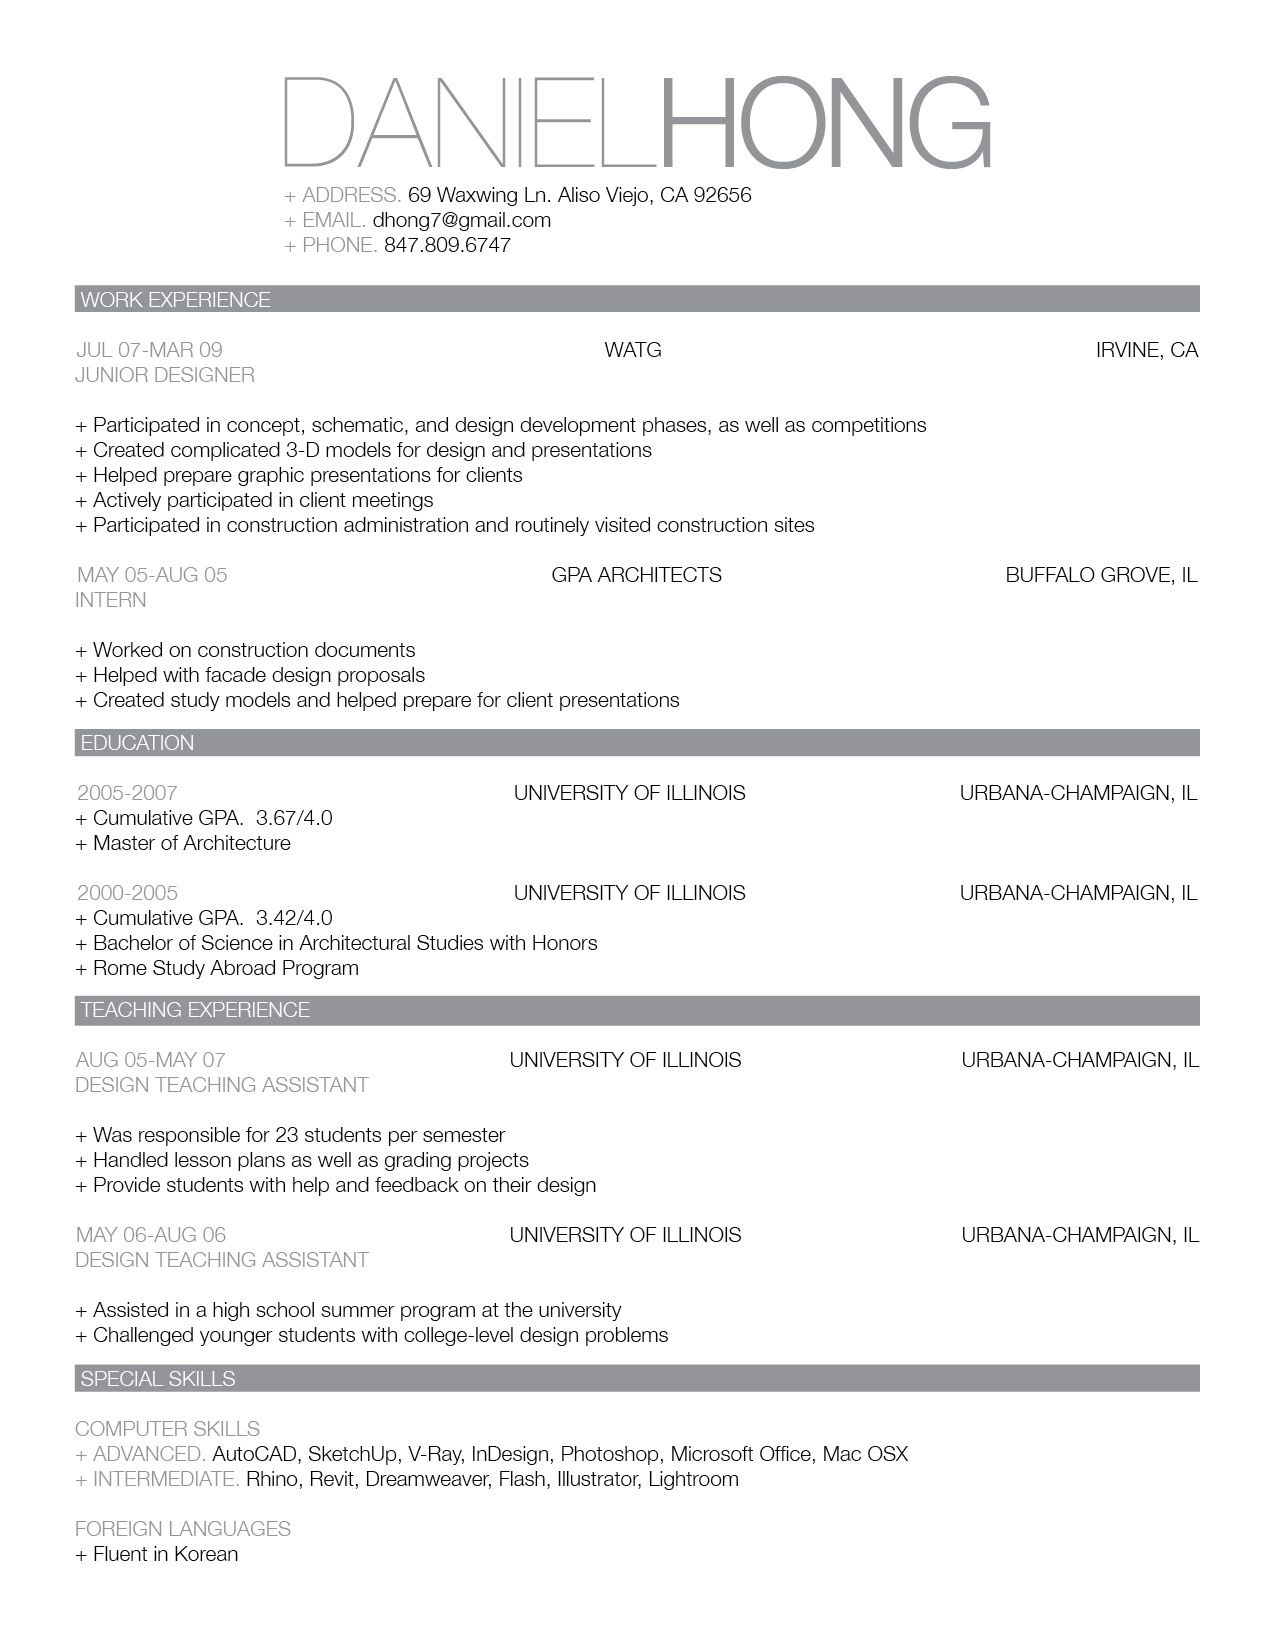 resume style samples - Examples Of Professional Resumes